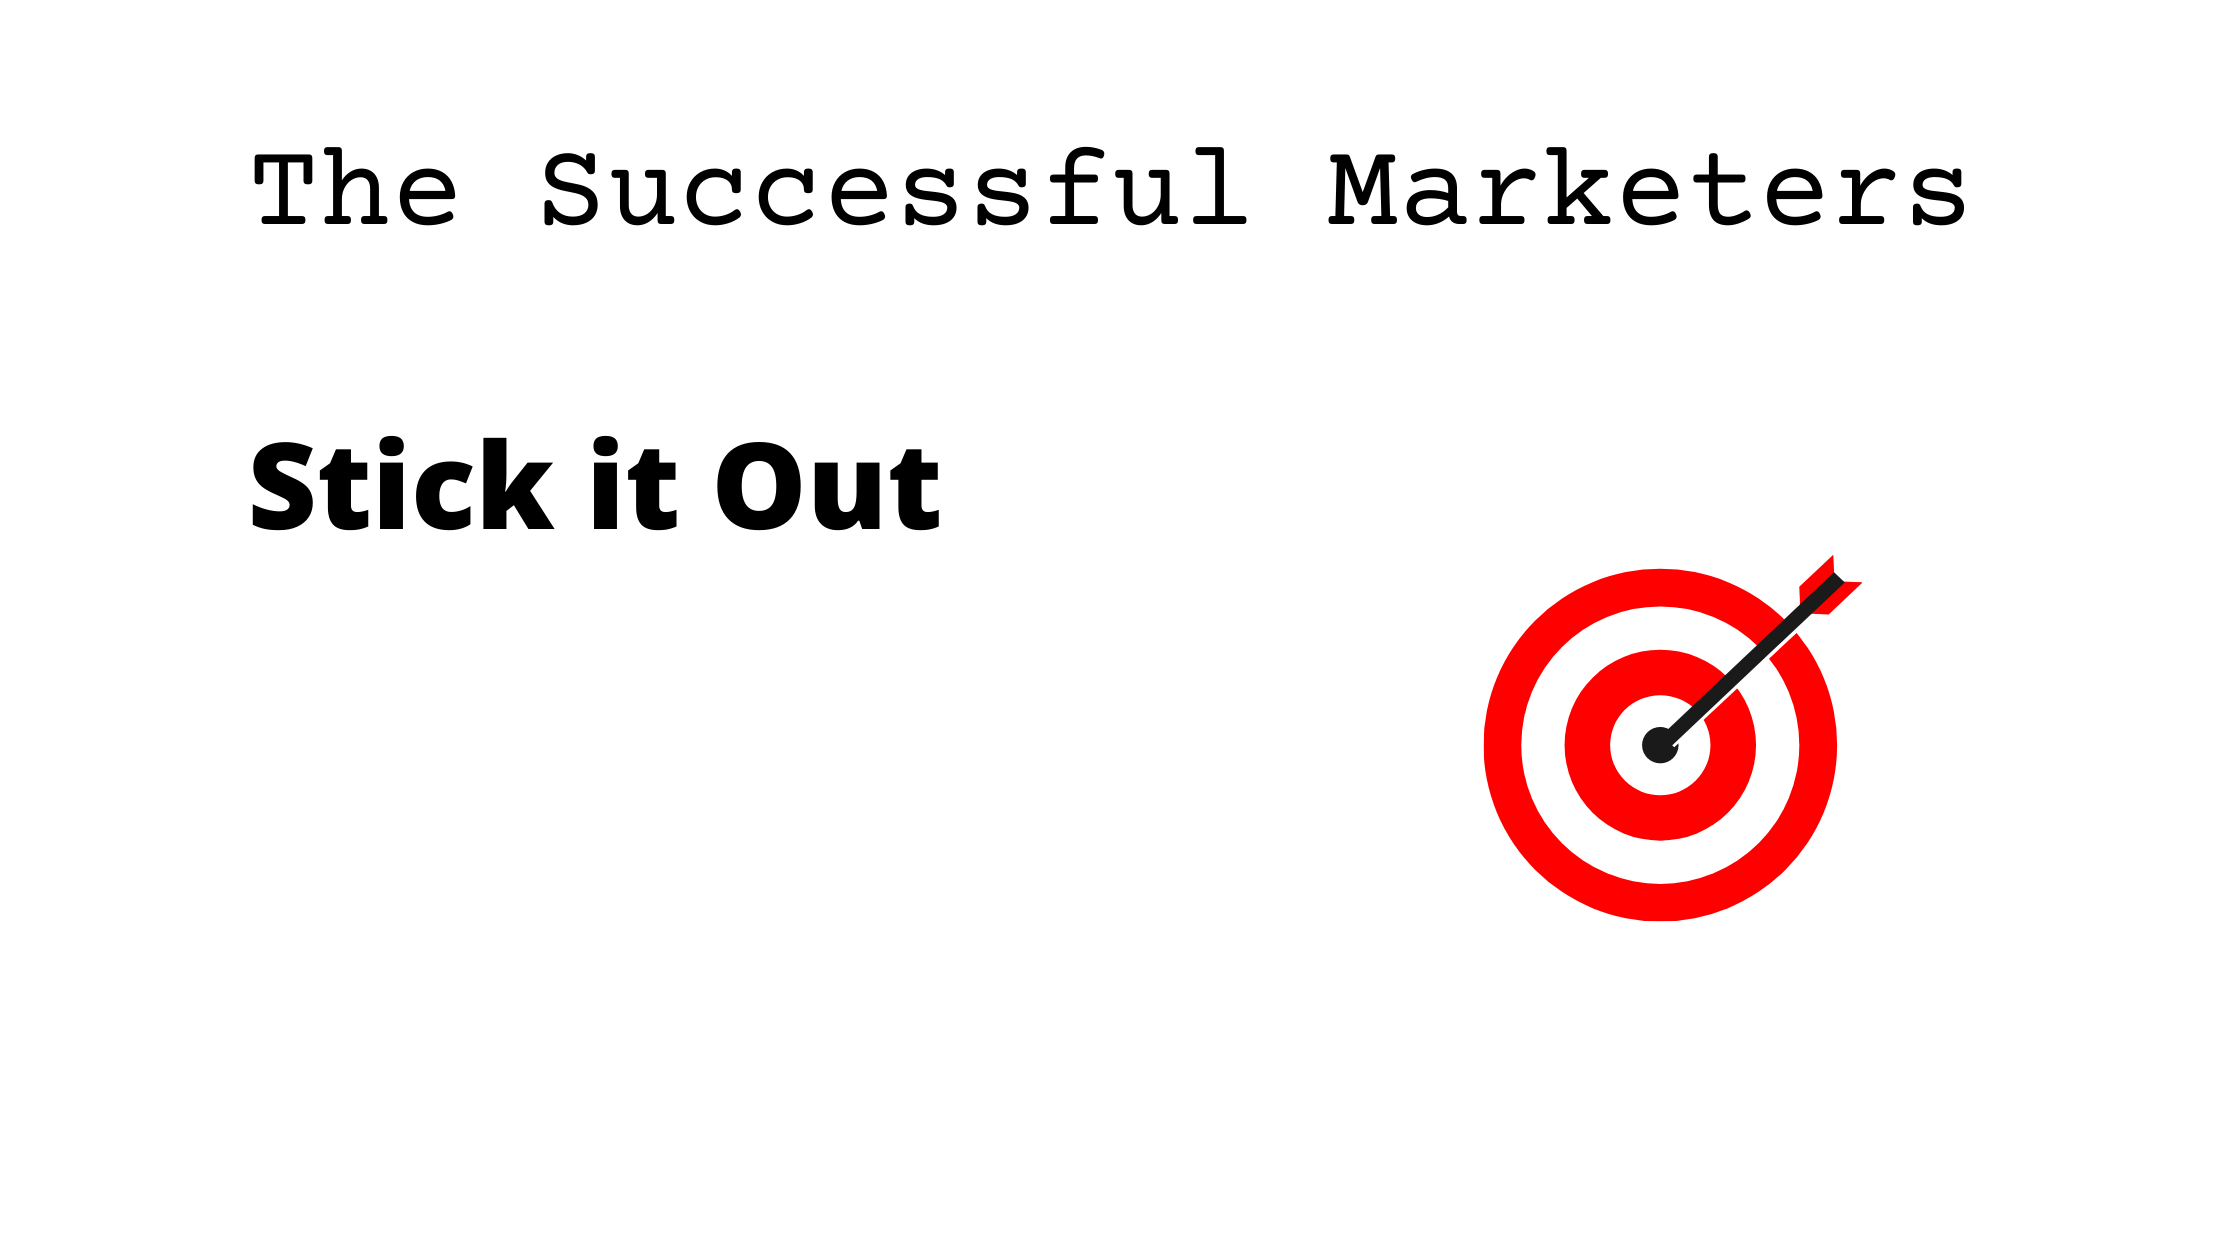 The Successful Marketers Stick it Out